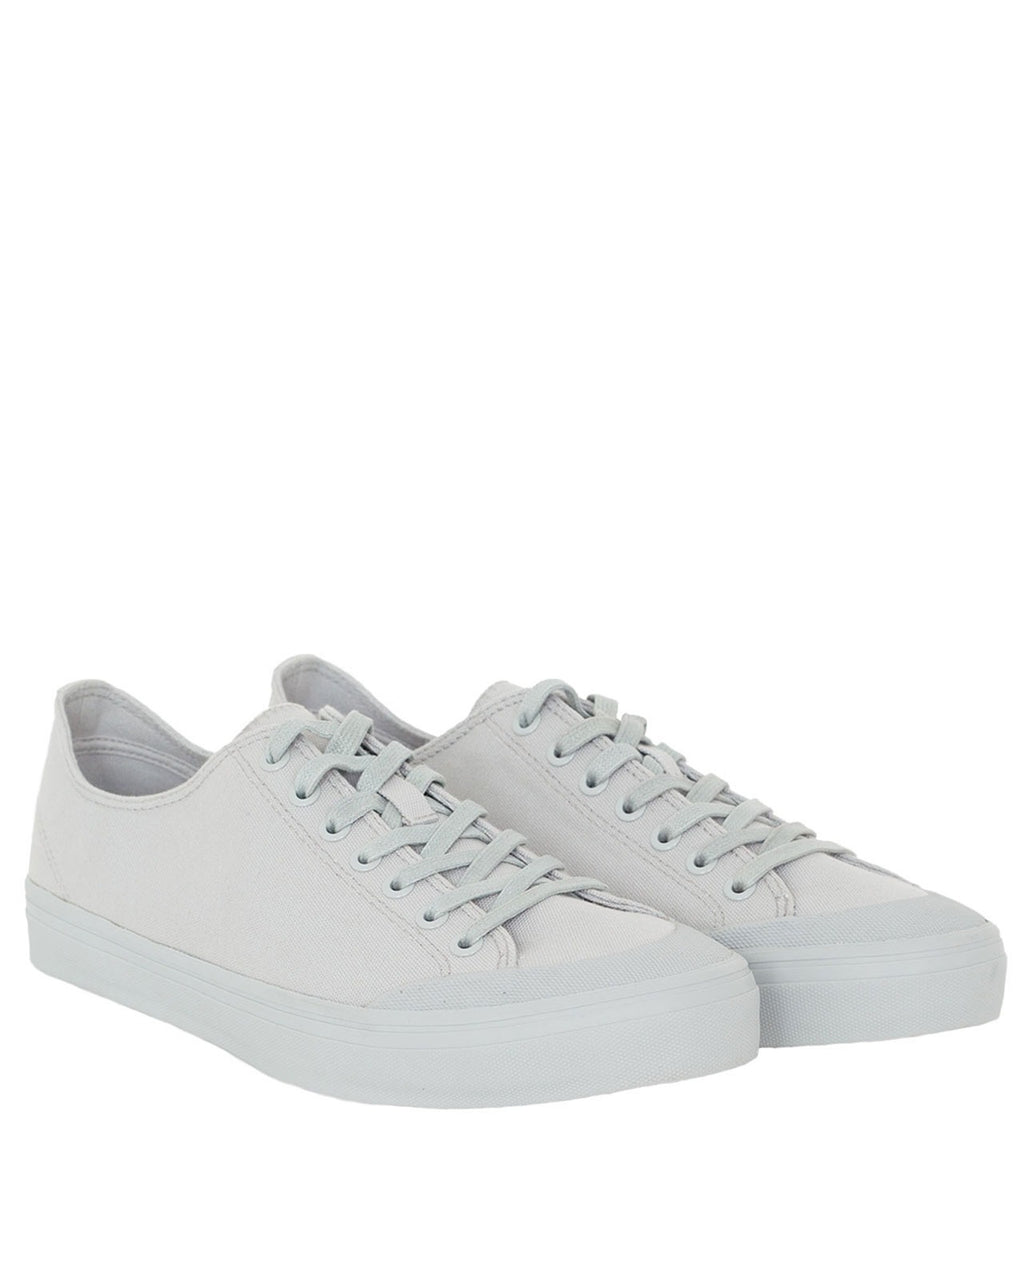 Erik Schedin Canvas Sneaker, Light Grey